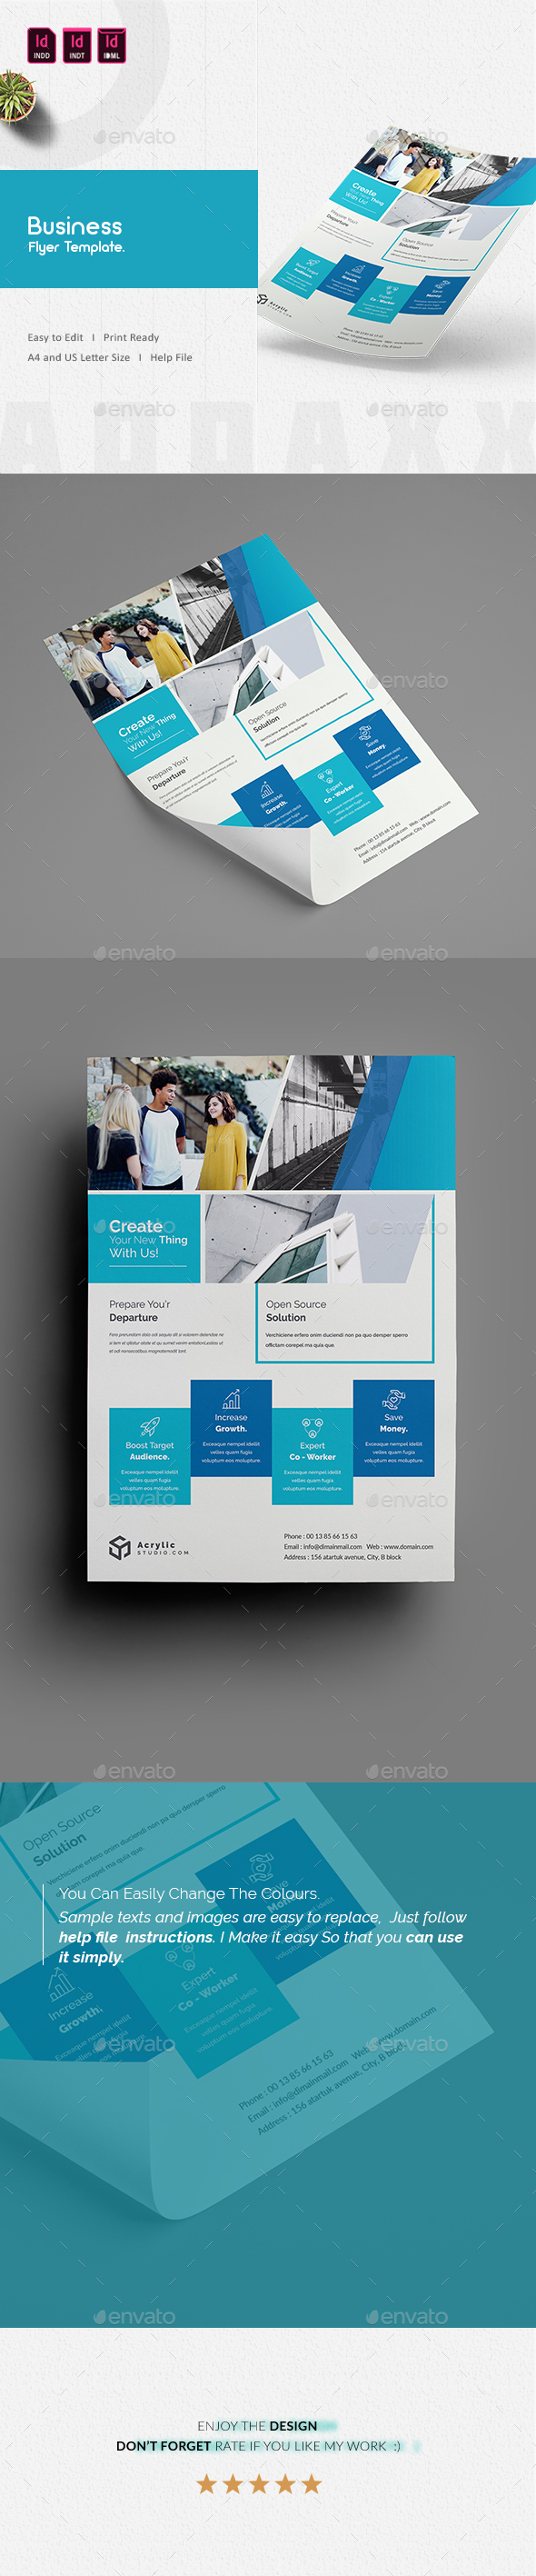 GraphicRiver Business Flyer 21171648